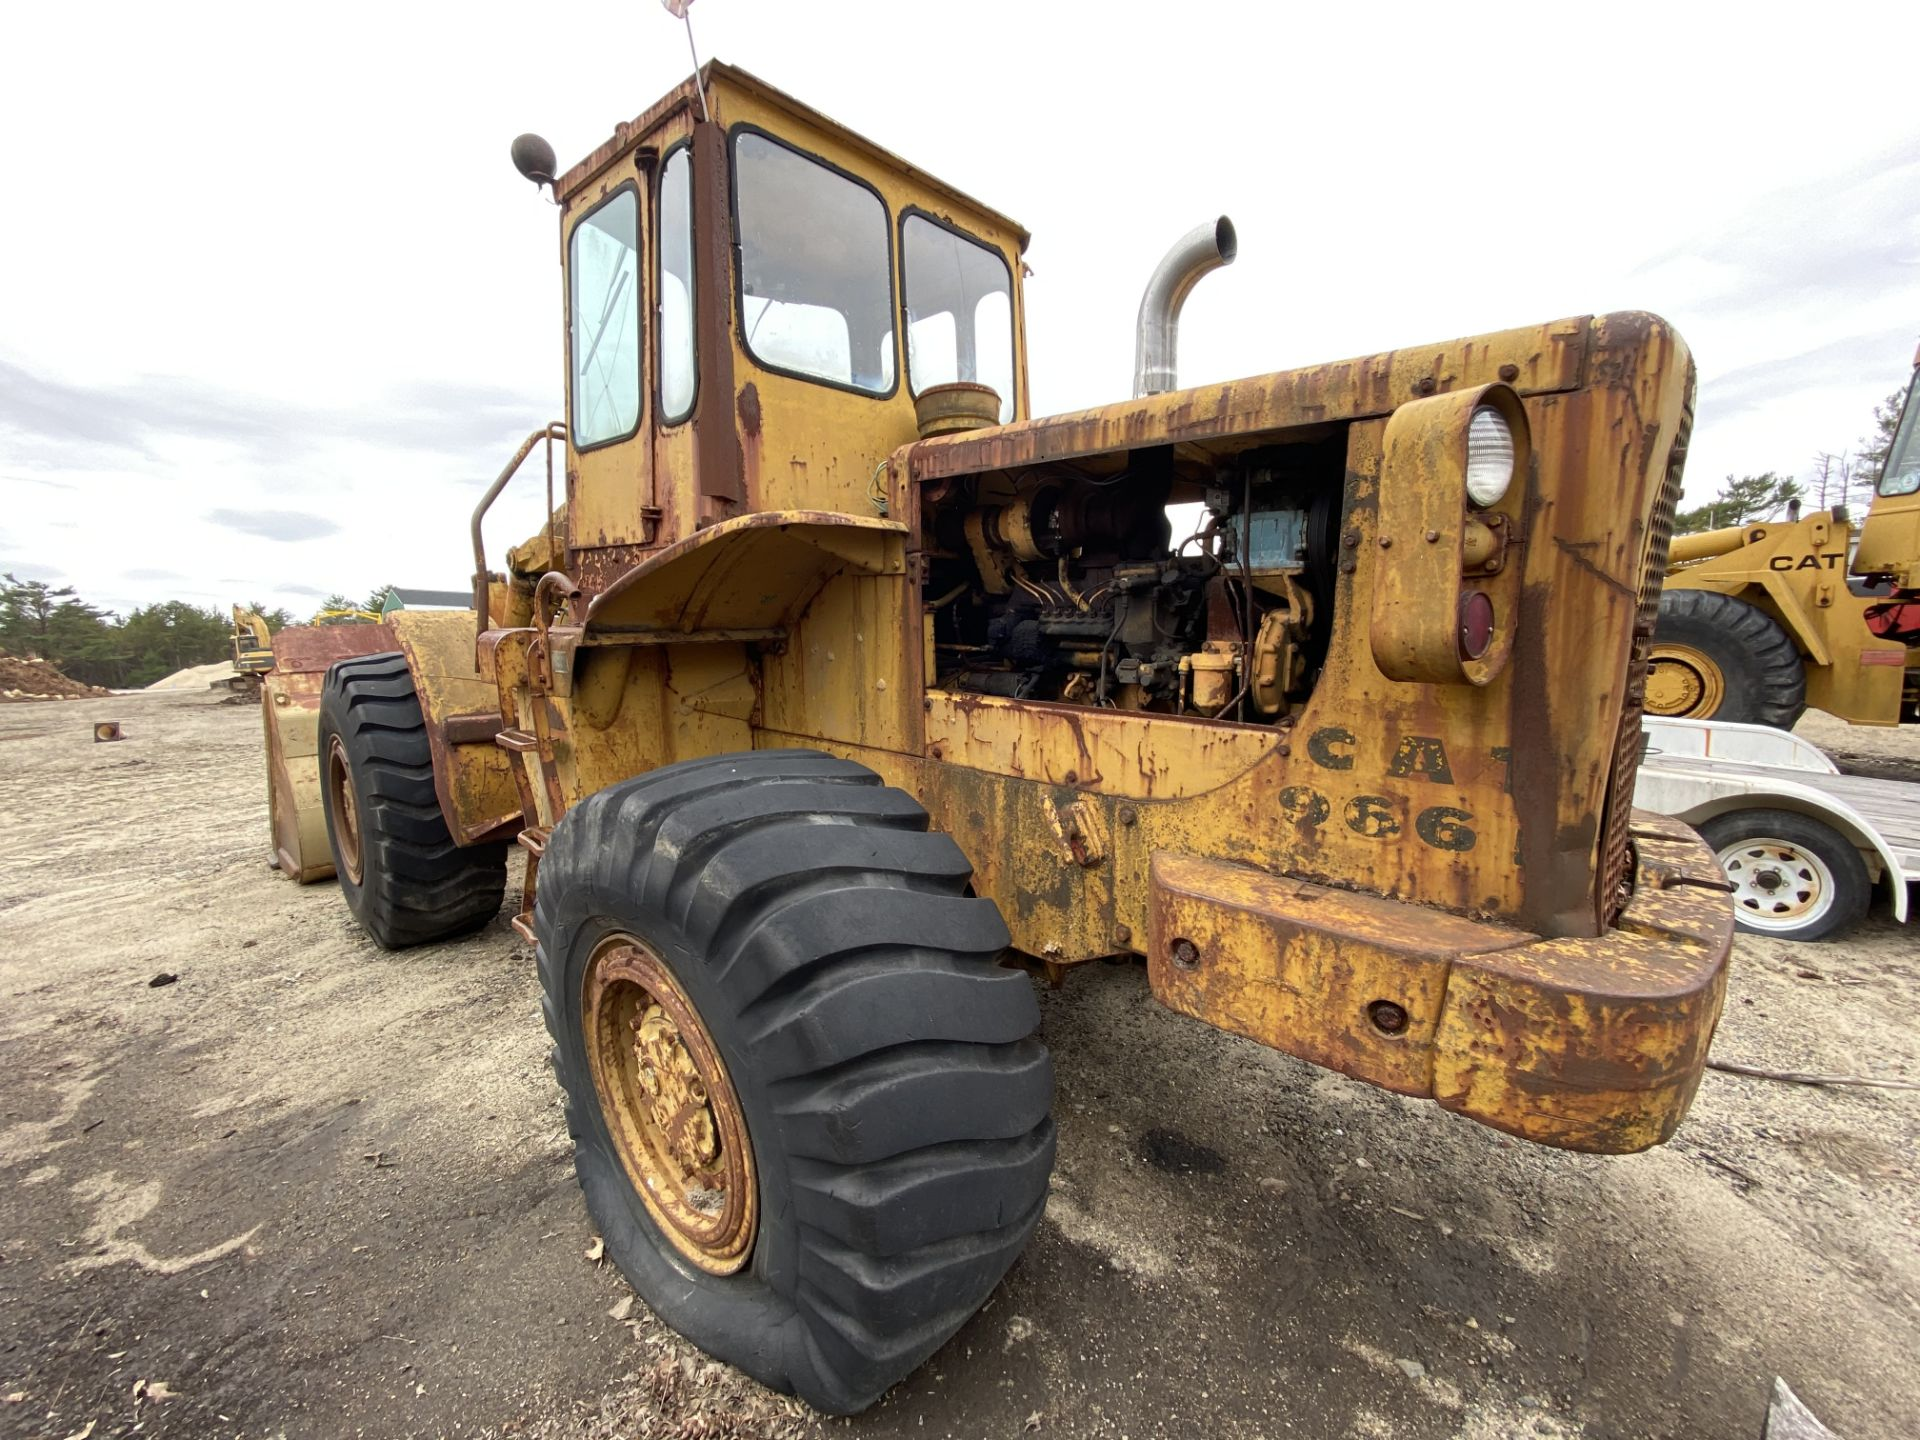 Caterpillar 966B Wheel Loader s/n 75A4794, No Title - Image 11 of 16